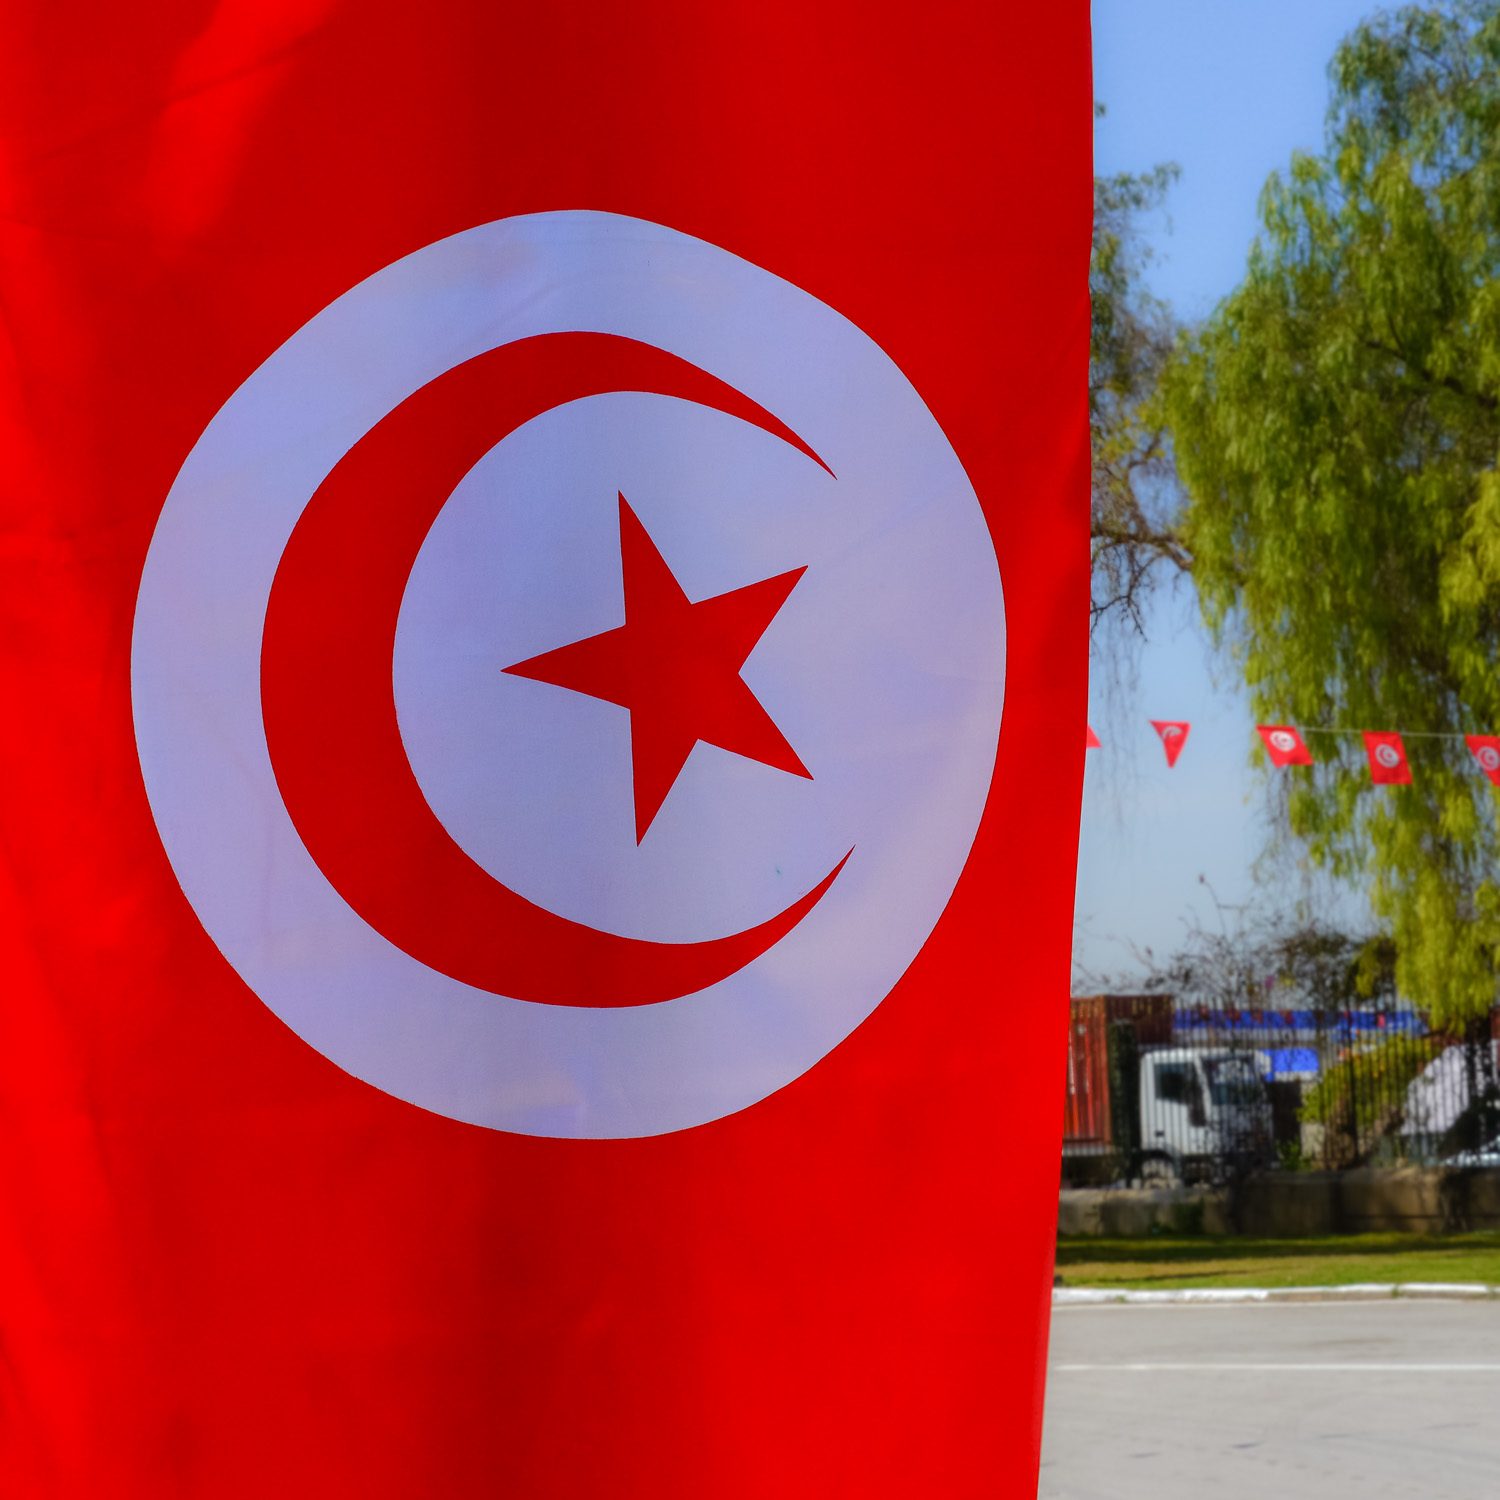 Tunisian patriotism was on display. Photo by Johanna Read TravelEater.net.